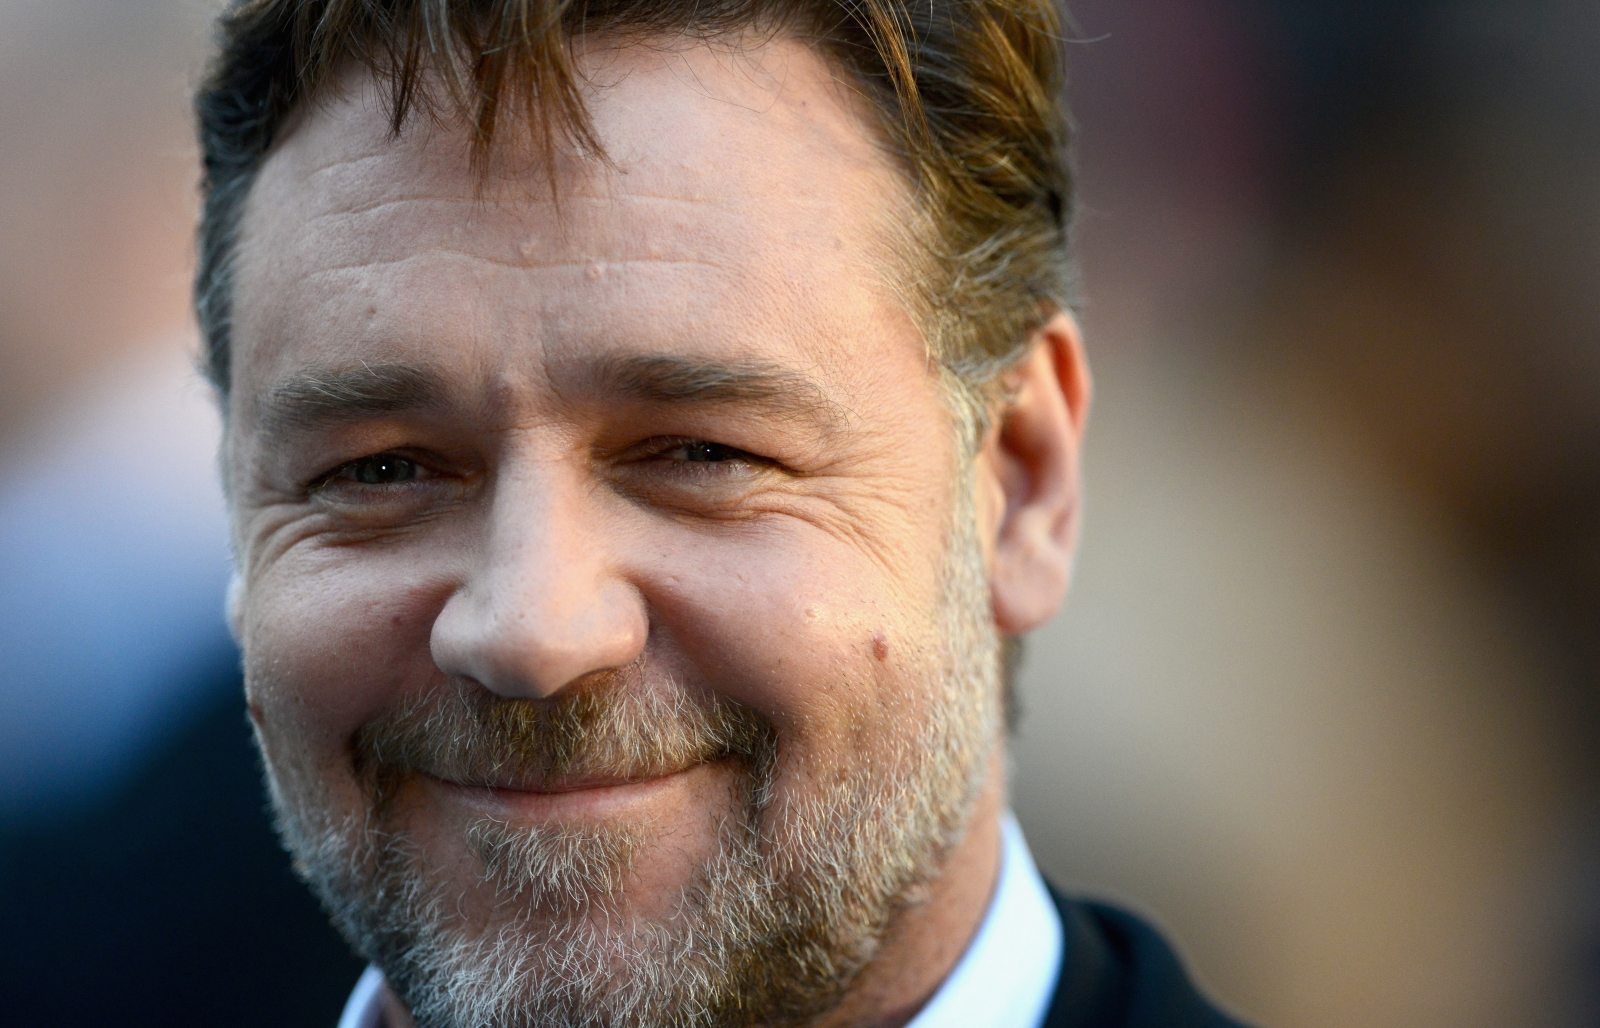 Russell Crowe rules Instagram with hilarious debut posts ...